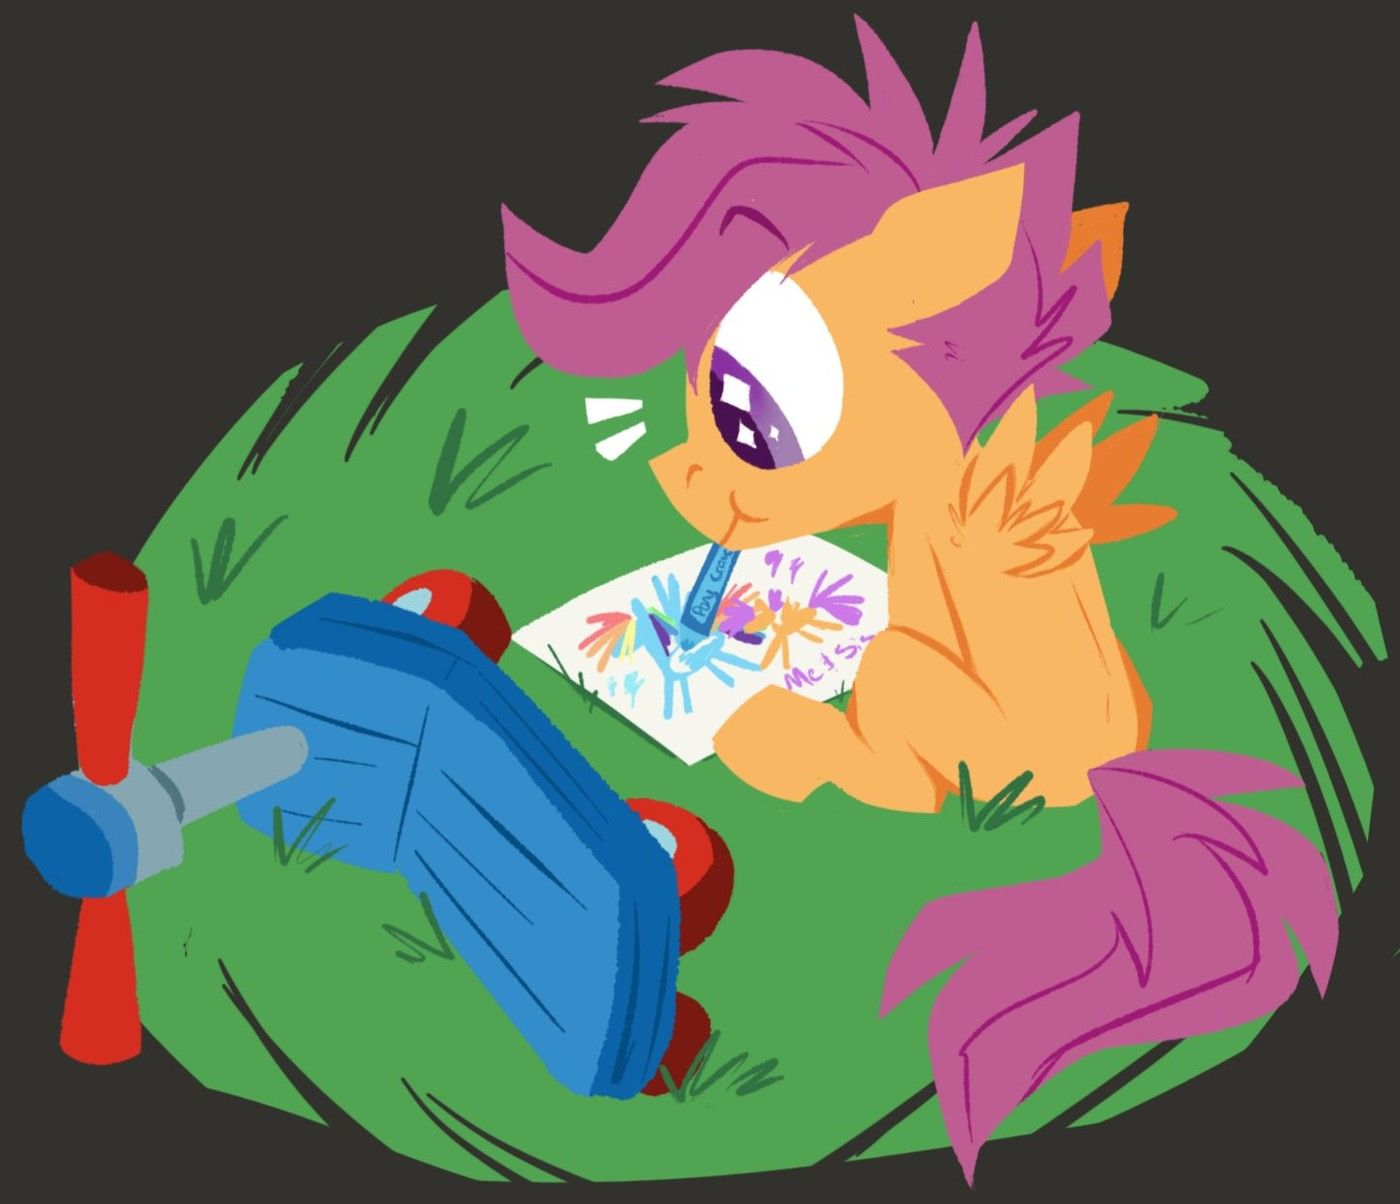 Rainbow Dash And Scootaloo Drawn By Klhpyro Bronibooru In 2020 Mlp My Little Pony Rainbow Dash Character Art For most of your scootaloo needs. pinterest